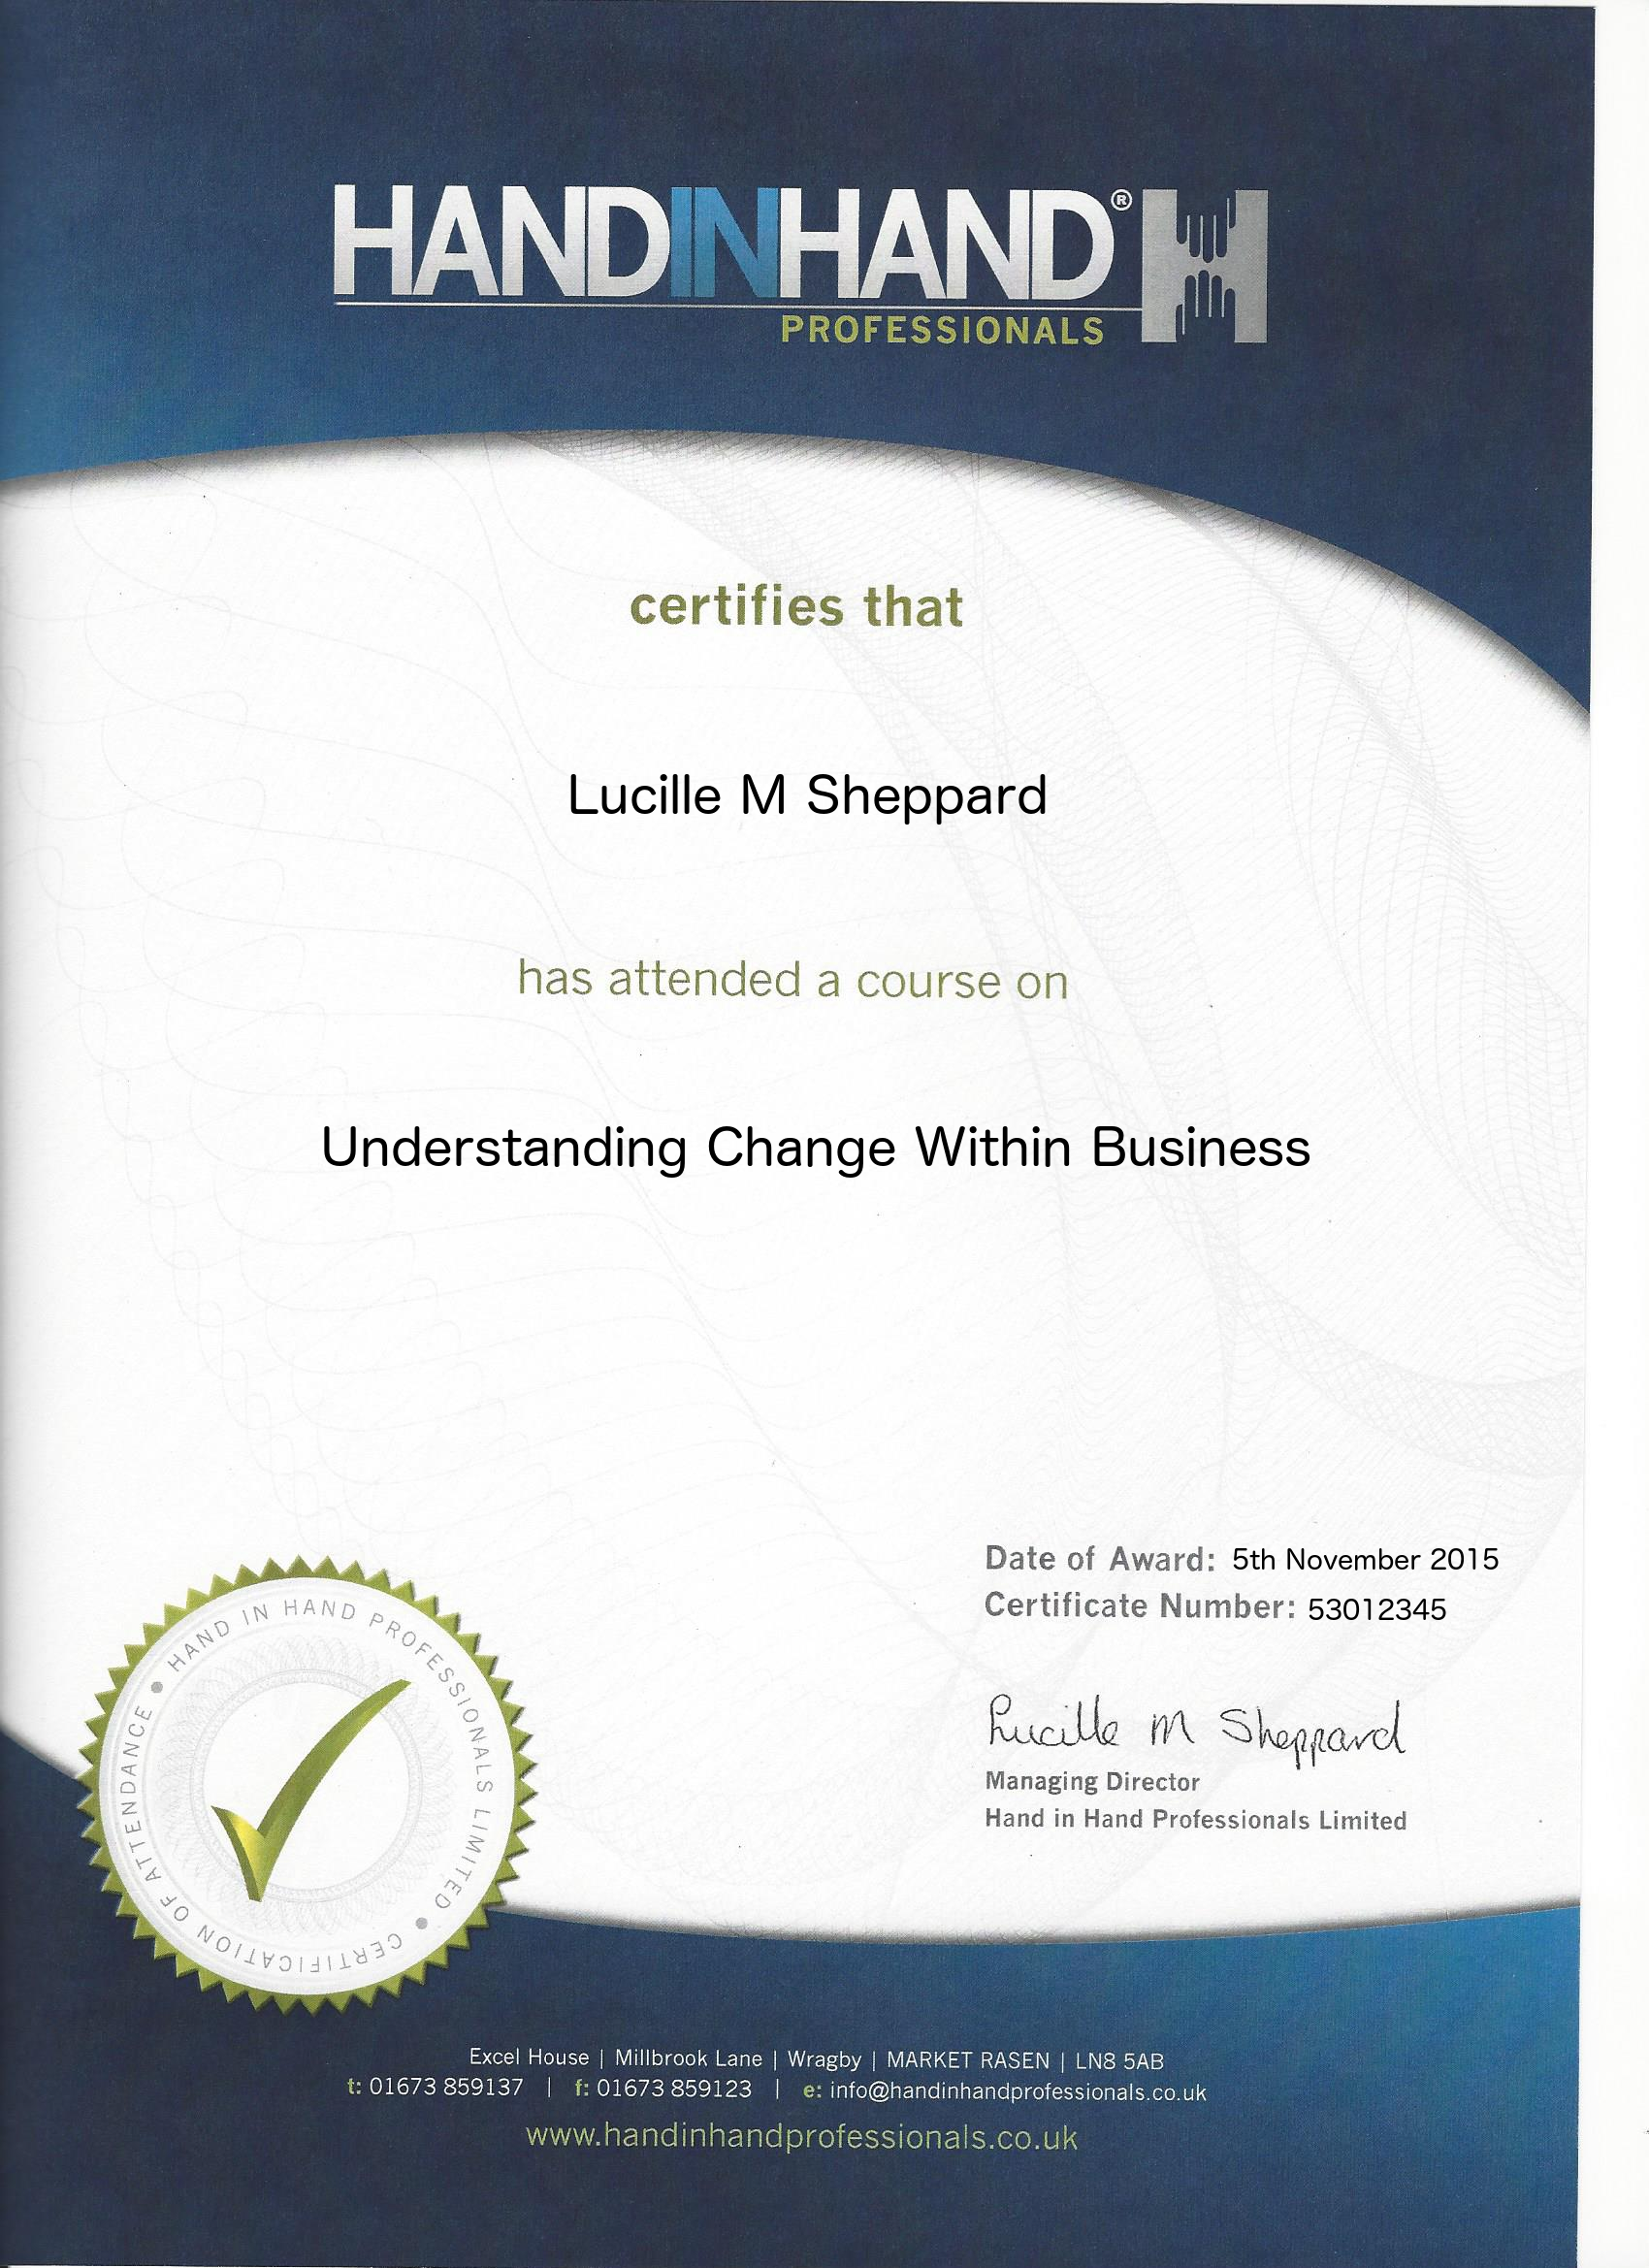 understanding change within business course certificate